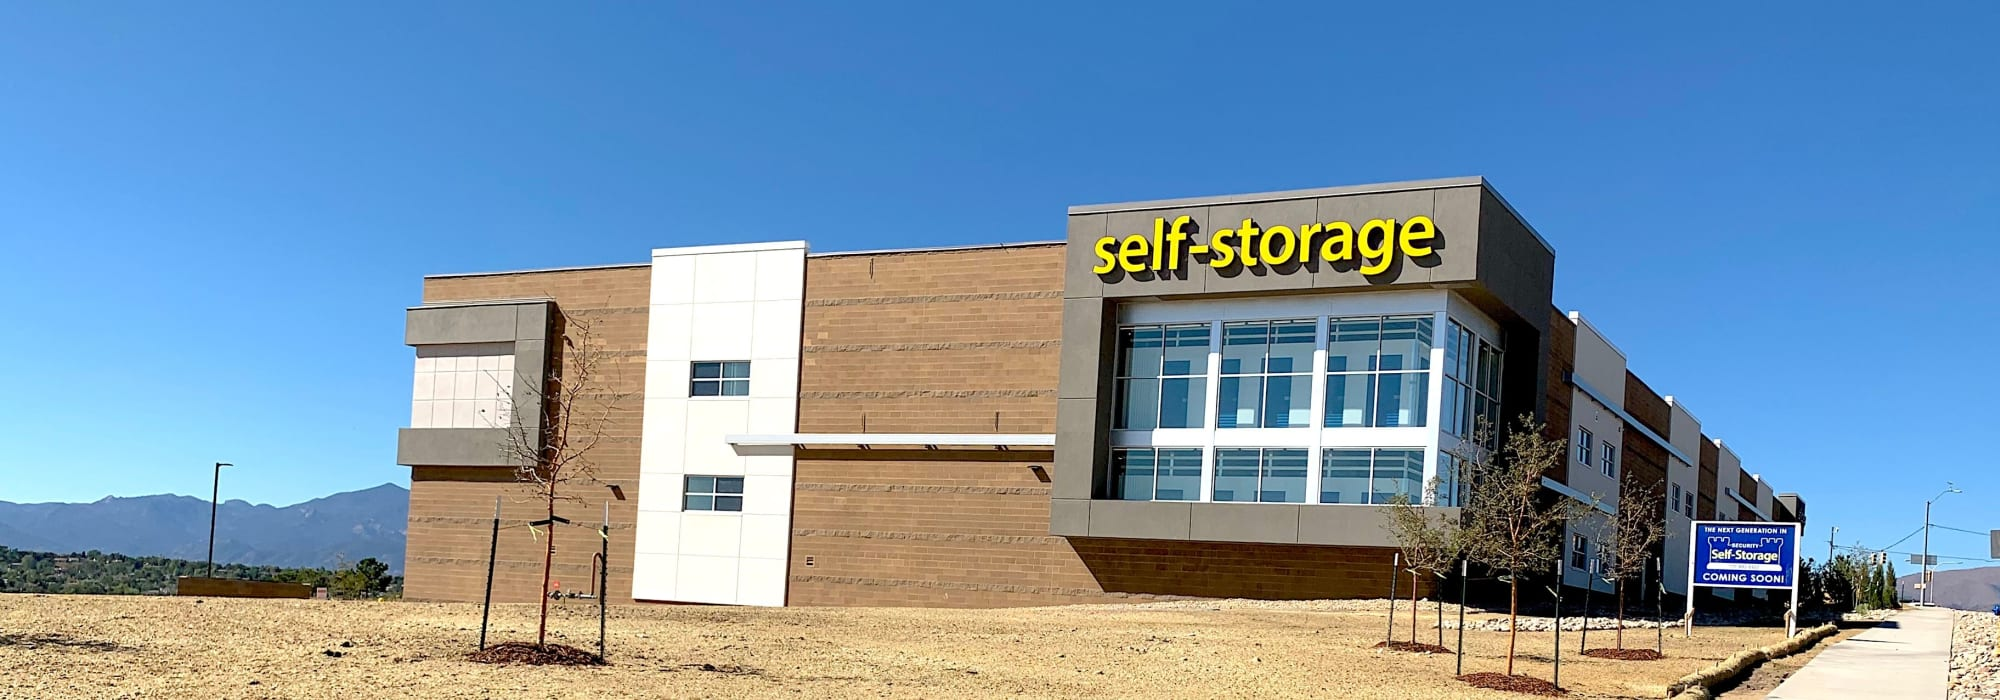 Security Self-Storage in Colorado Springs, Colorado